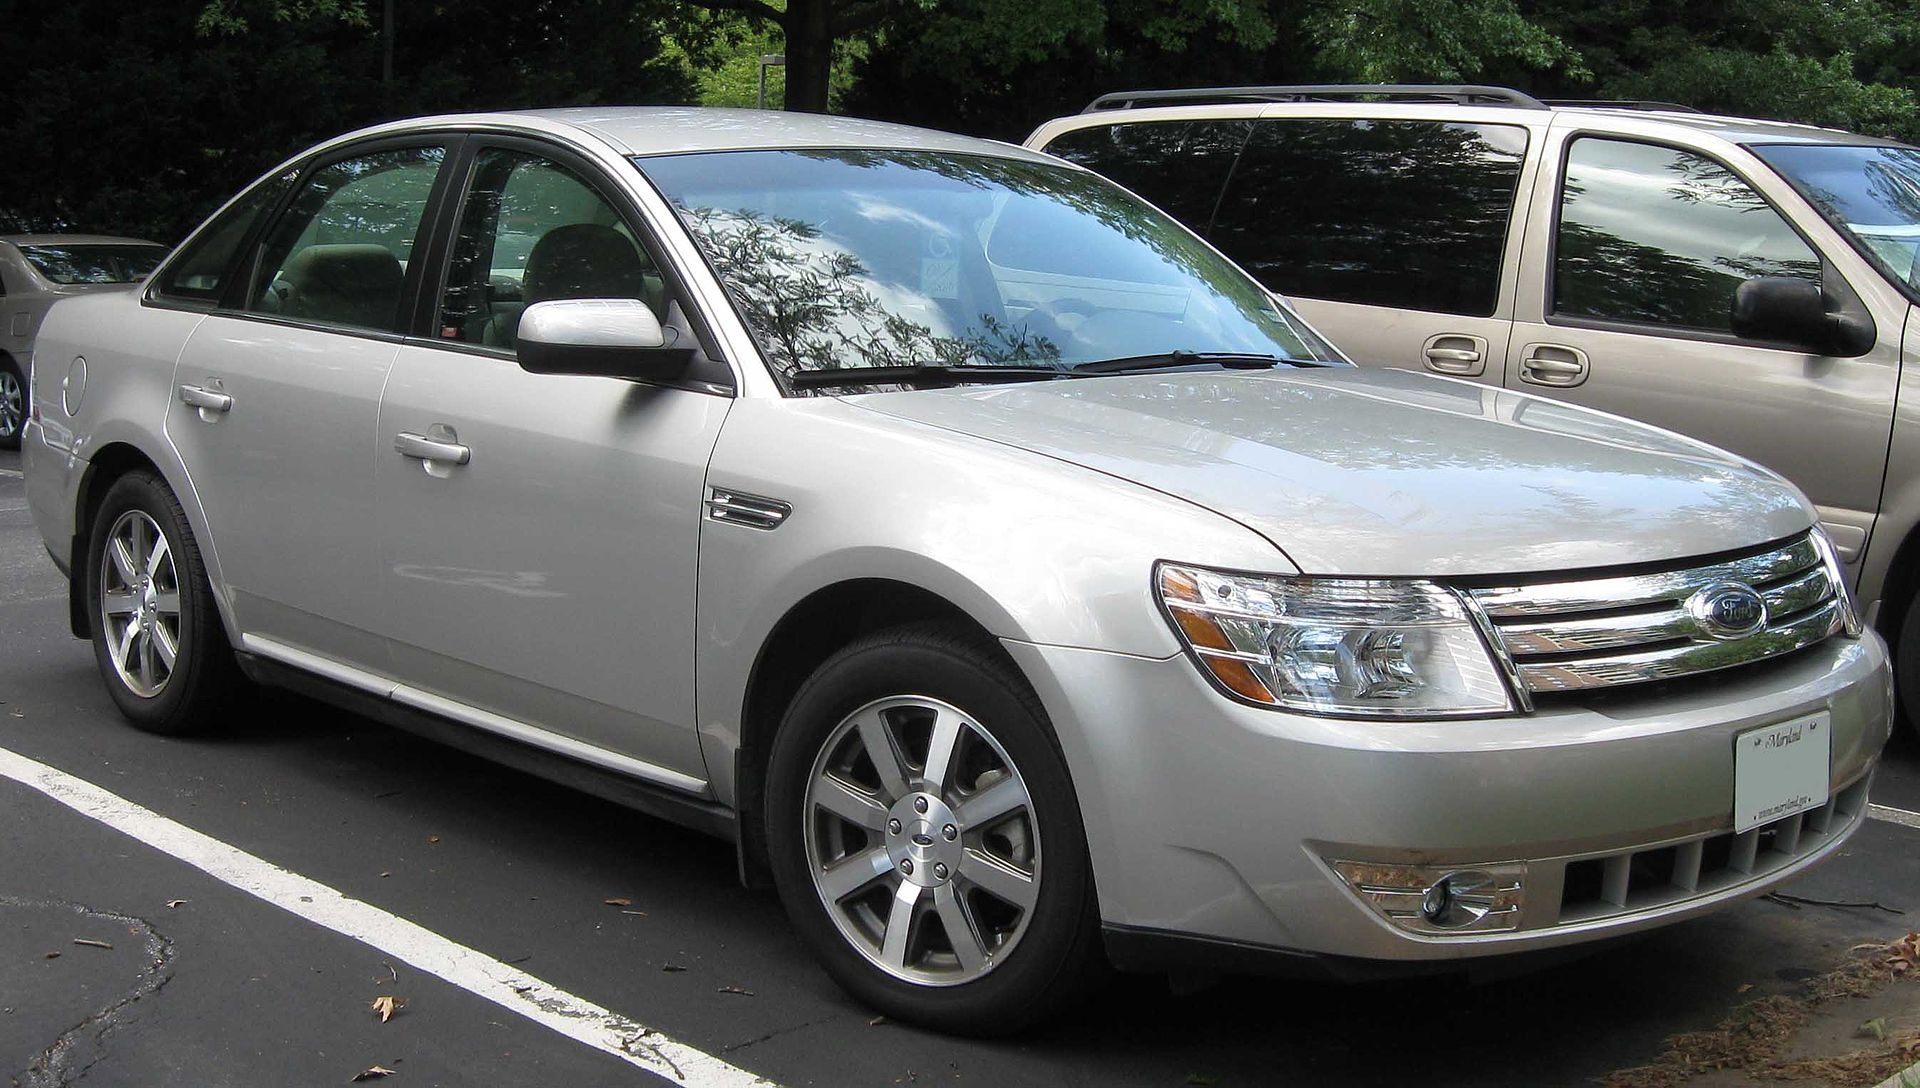 2006 Volvo Xc90 >> Ford Taurus (fifth generation) - Wikipedia